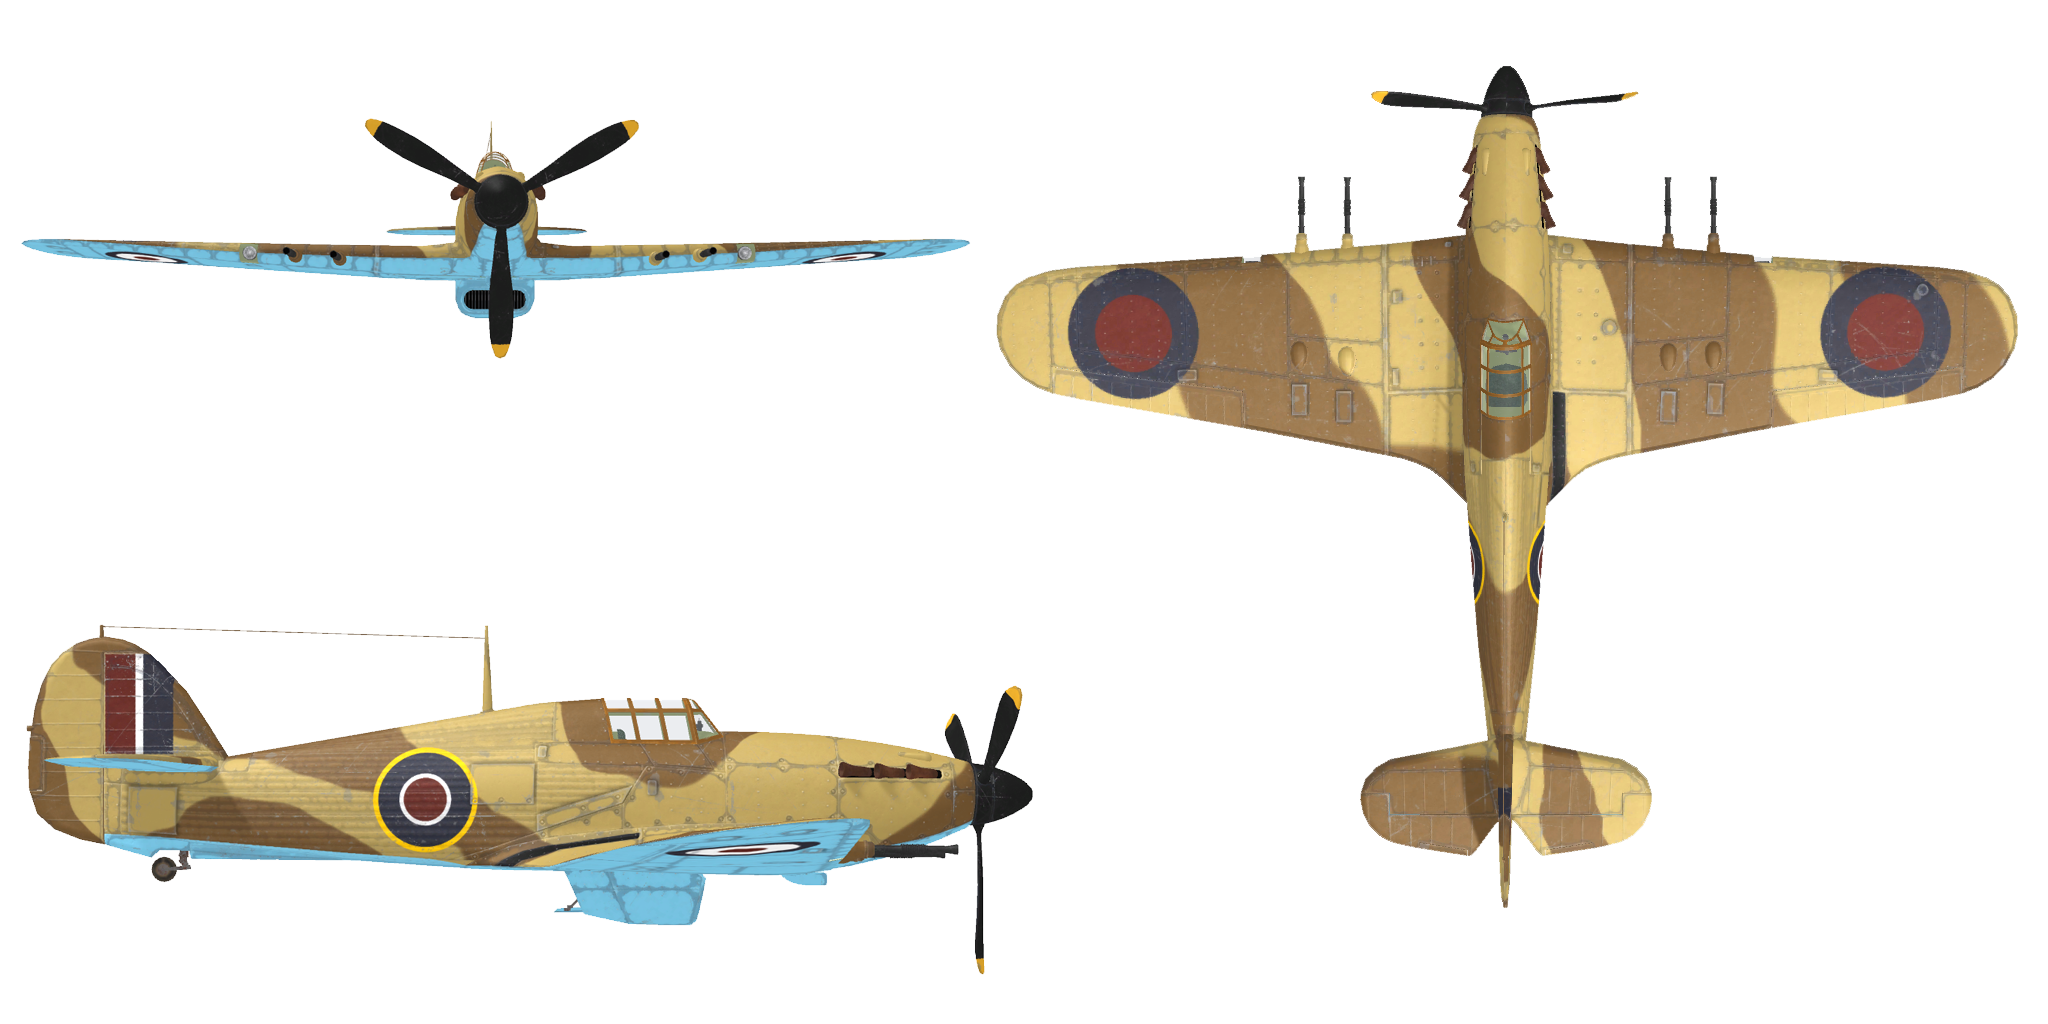 hurricane, aircraft ace maddox #30153